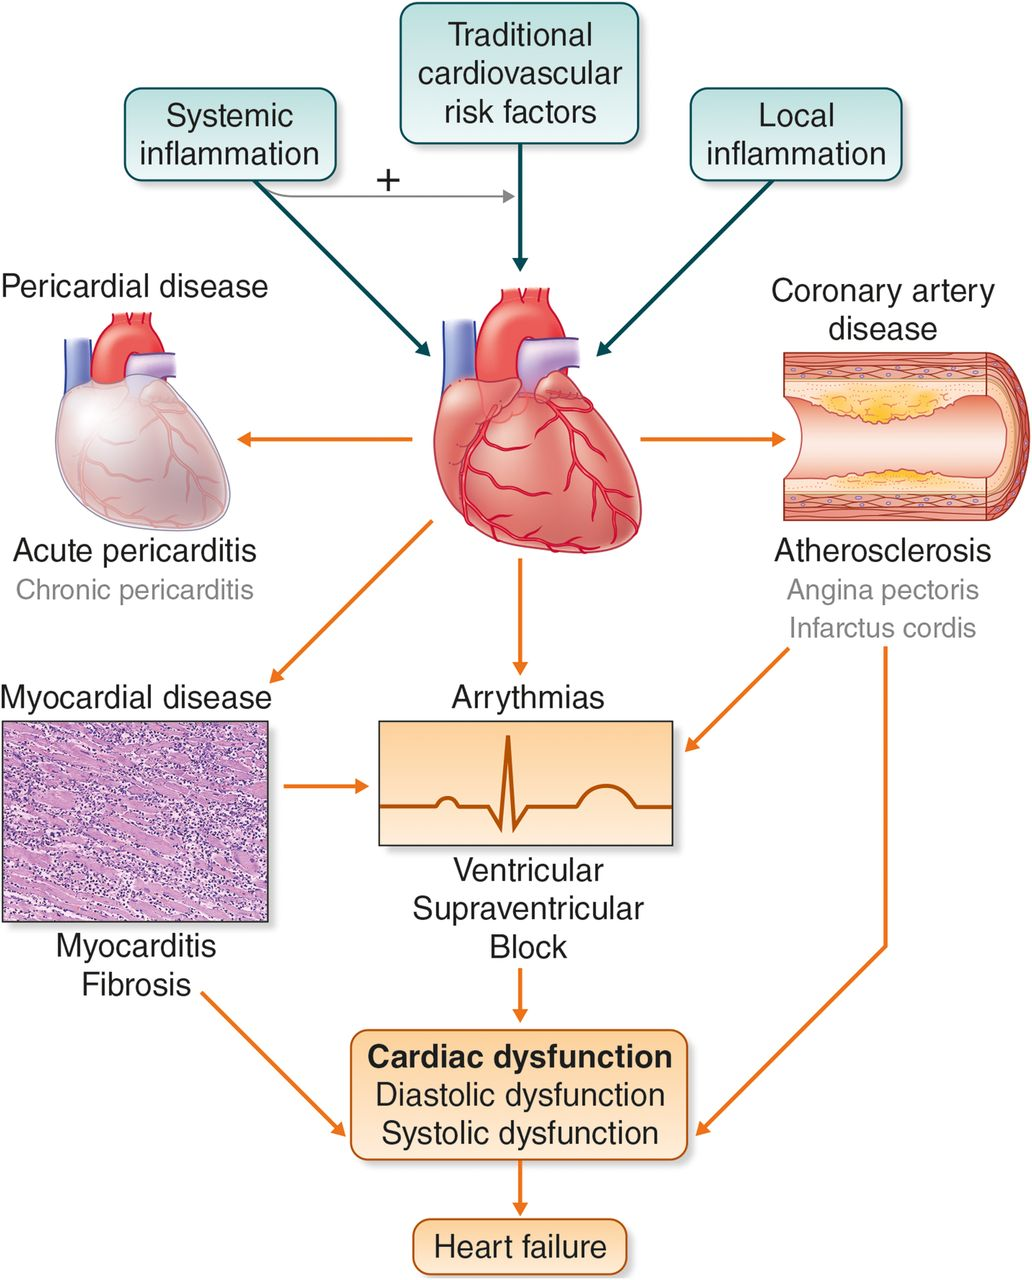 Cardiac involvement in adult and juvenile idiopathic inflammatory